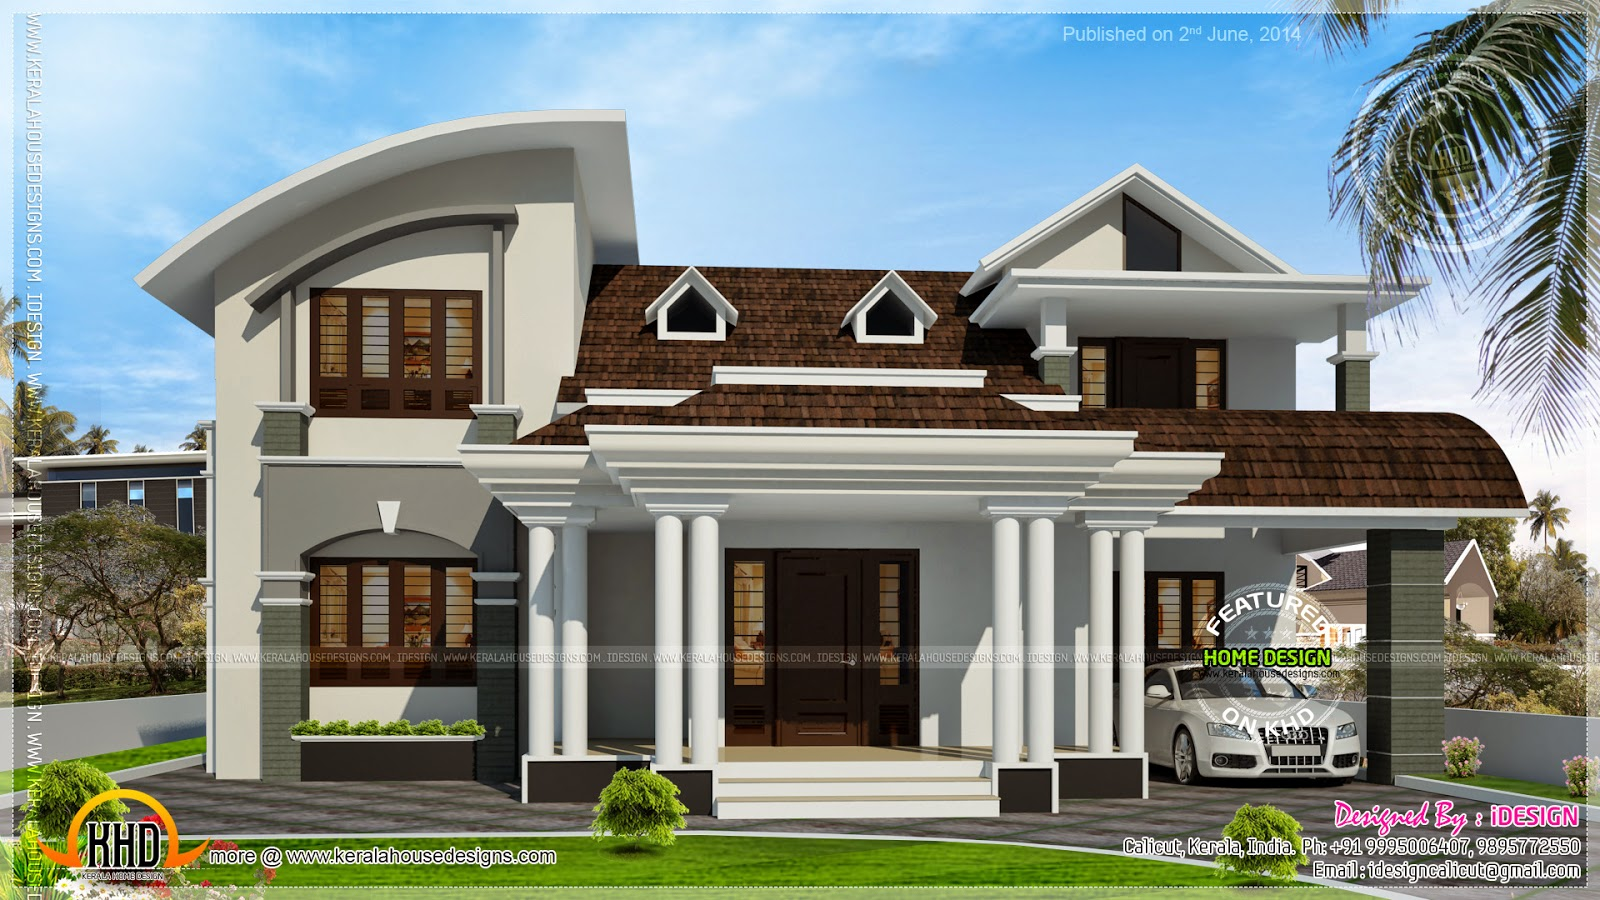 House with beautiful dormer windows kerala home design for House window design